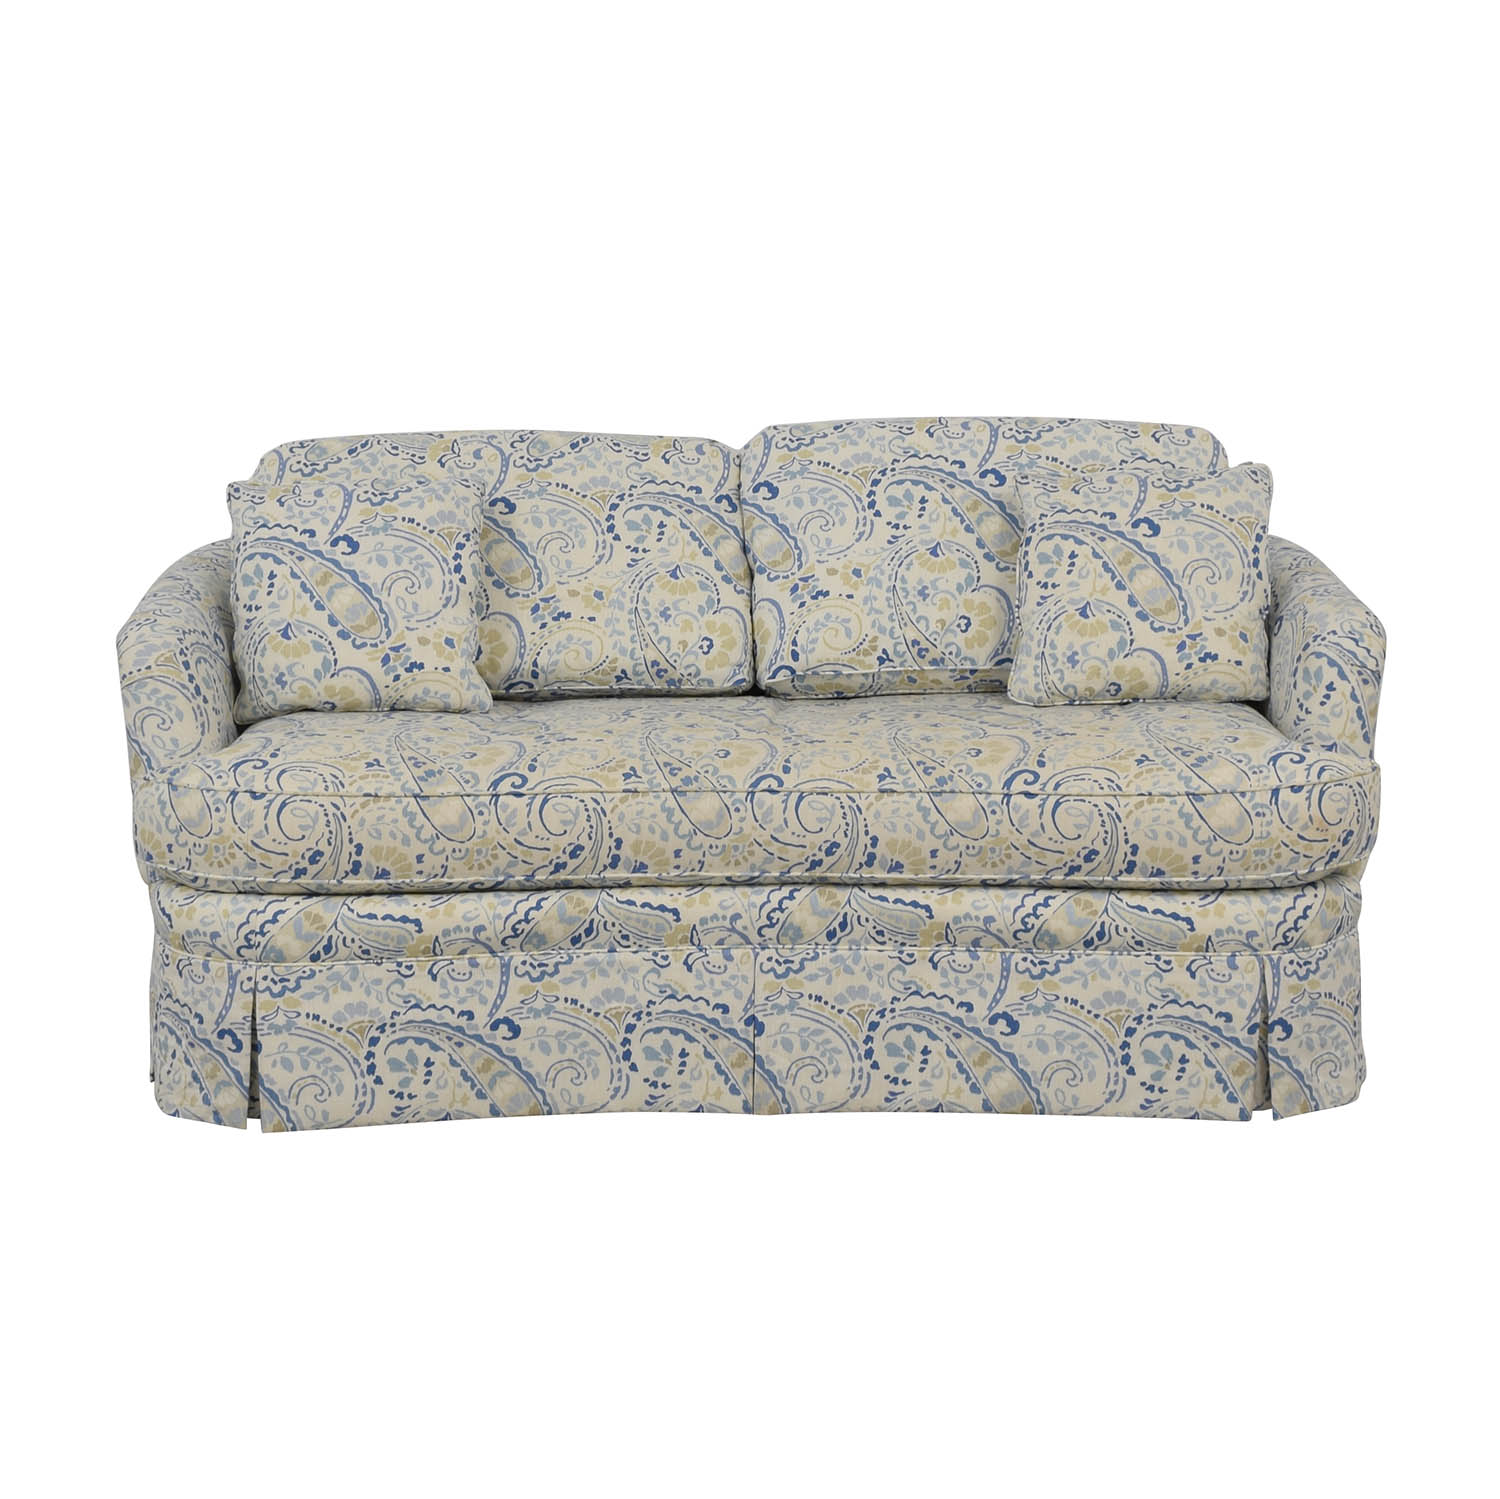 buy Taylor King Multi-Colored Single Cushion Love Seat Taylor King